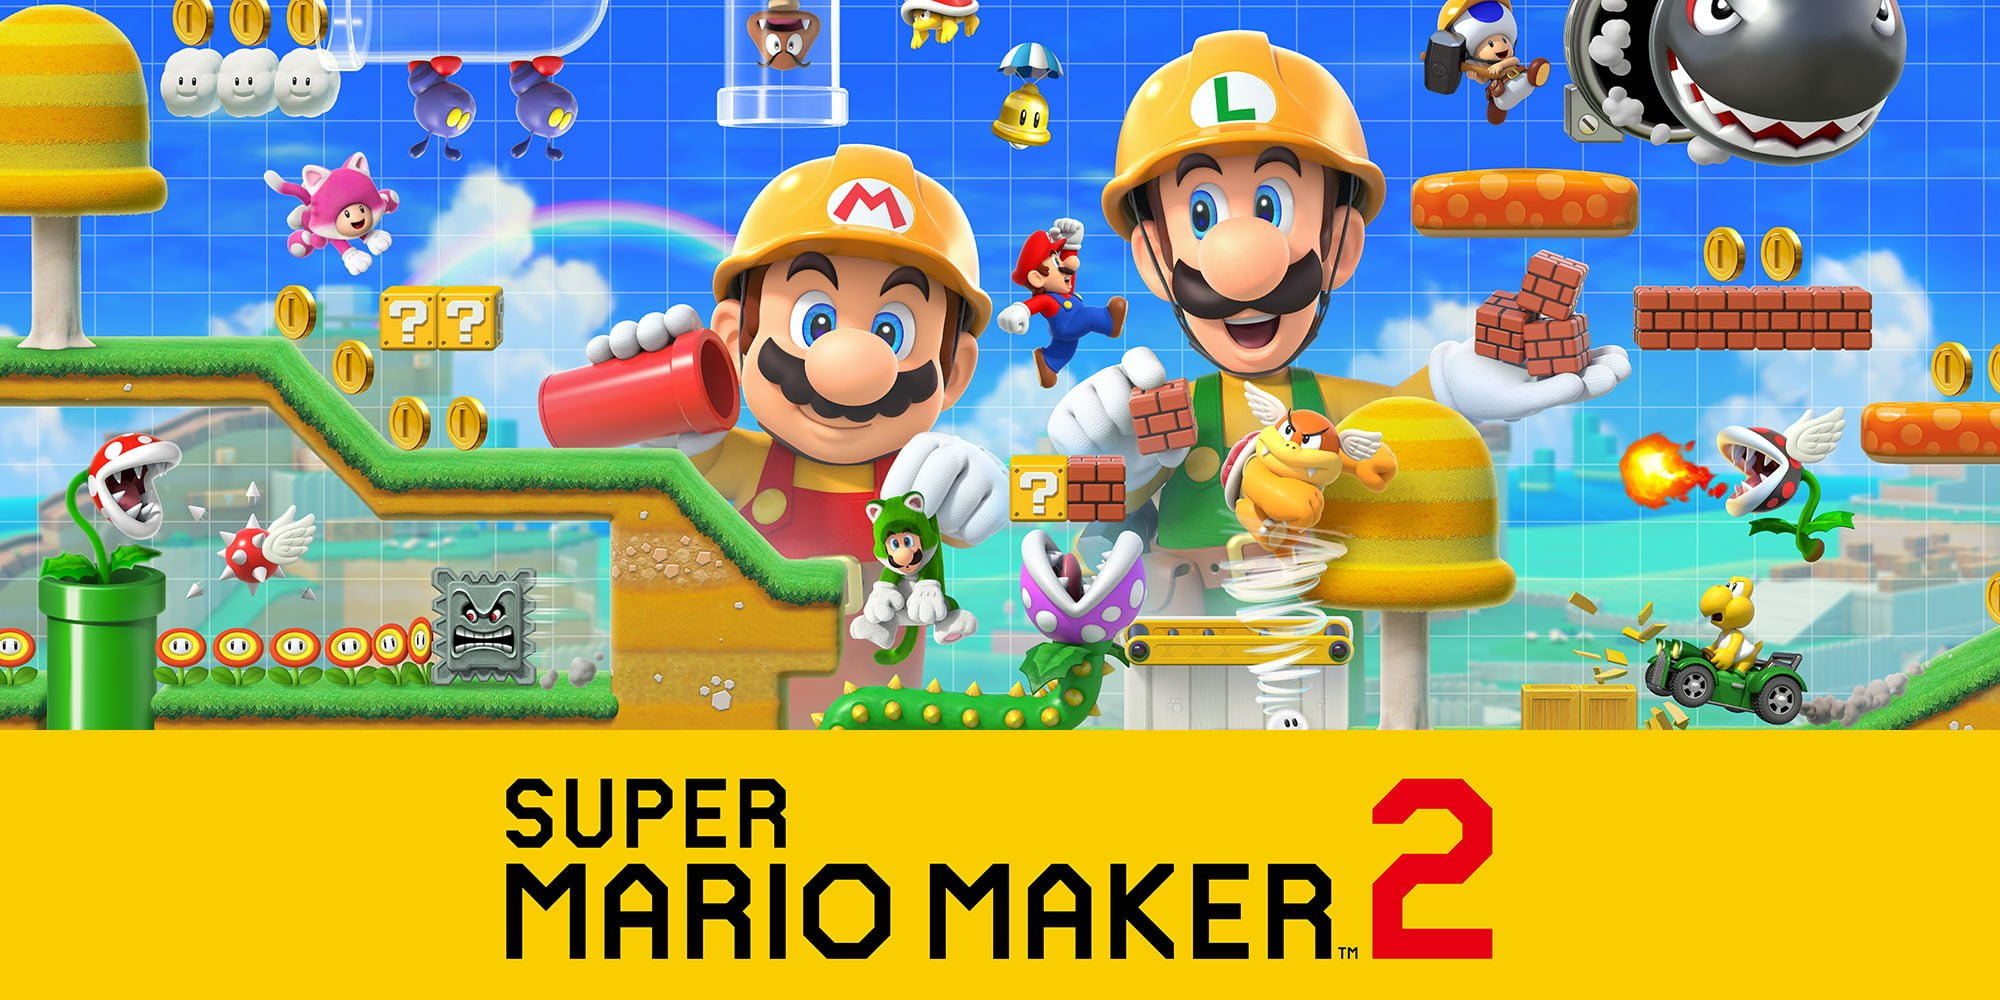 Super Mario Maker 2 Game Free Version Full Download 2019